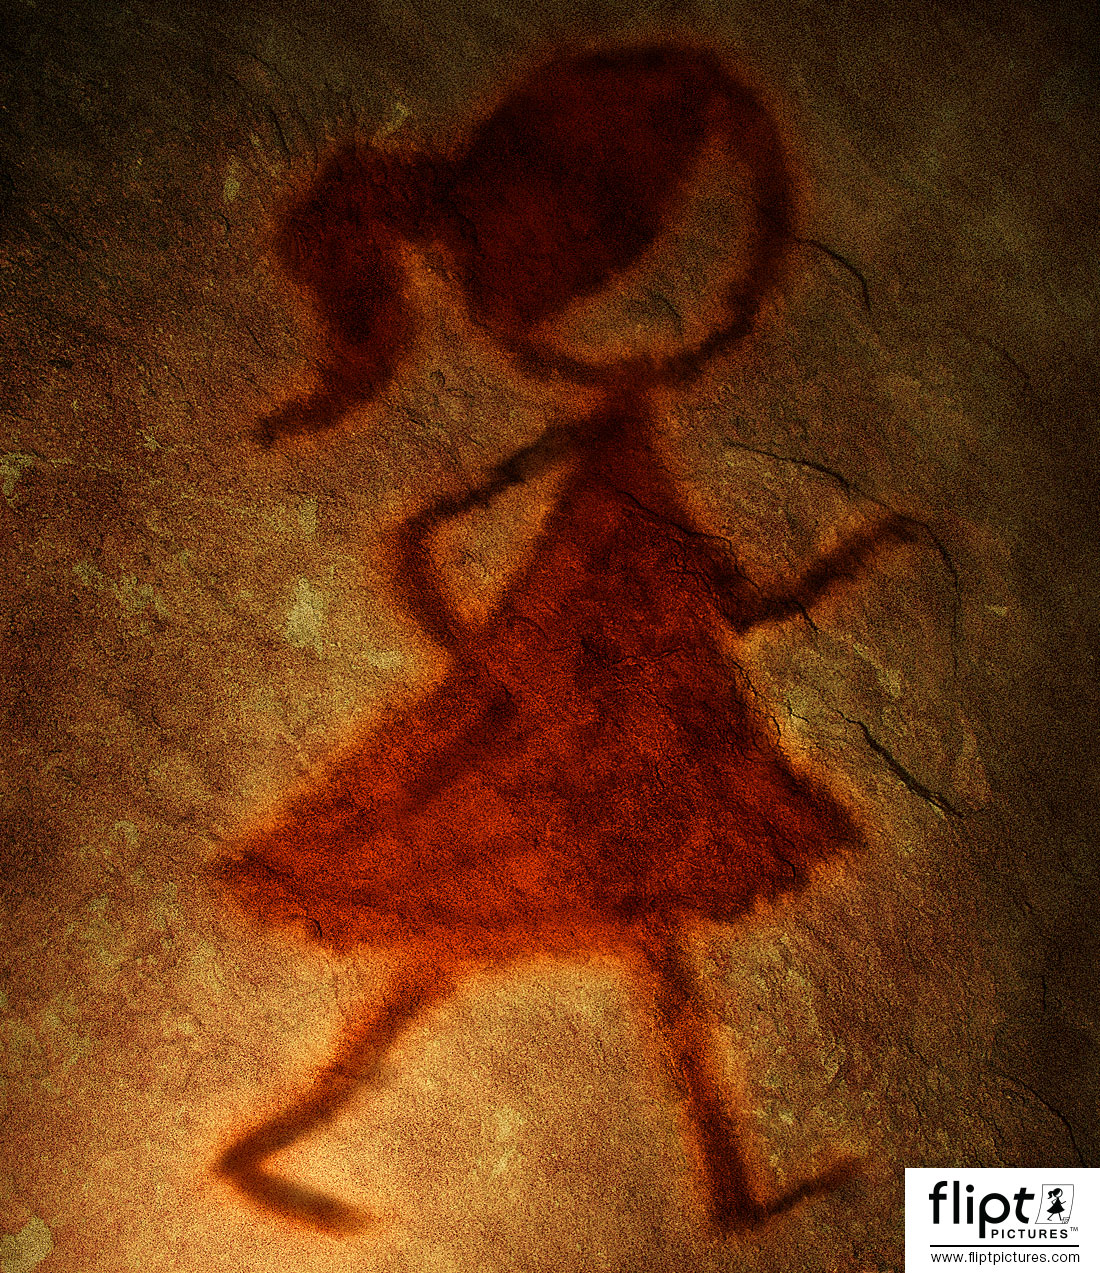 Flipt Pictures Cave Art Illustration